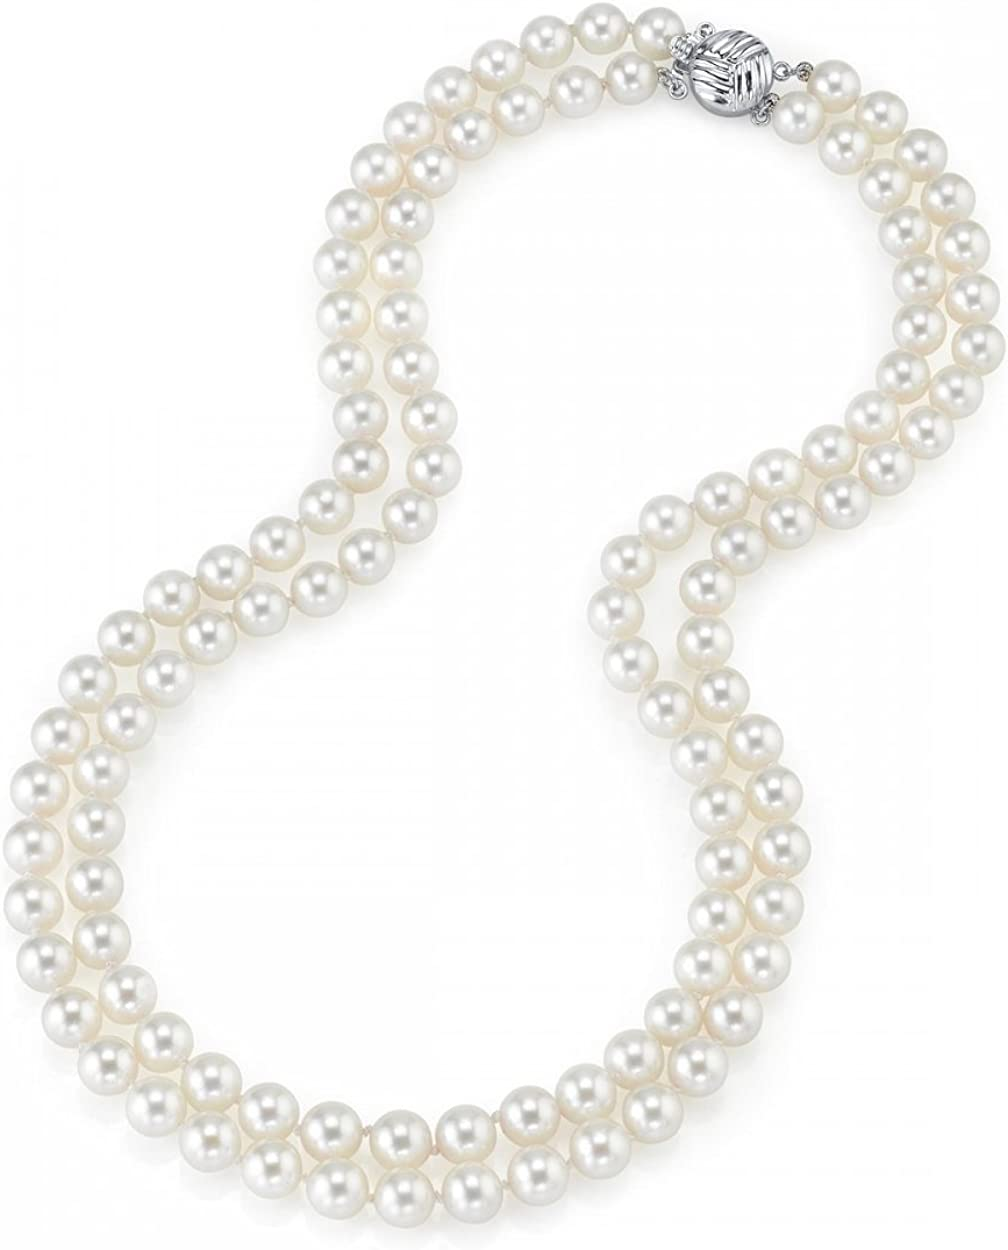 THE PEARL SOURCE 14K Gold 9-10mm AAA Quality Double Strand White Freshwater Cultured Pearl Necklace for Women in 19-20